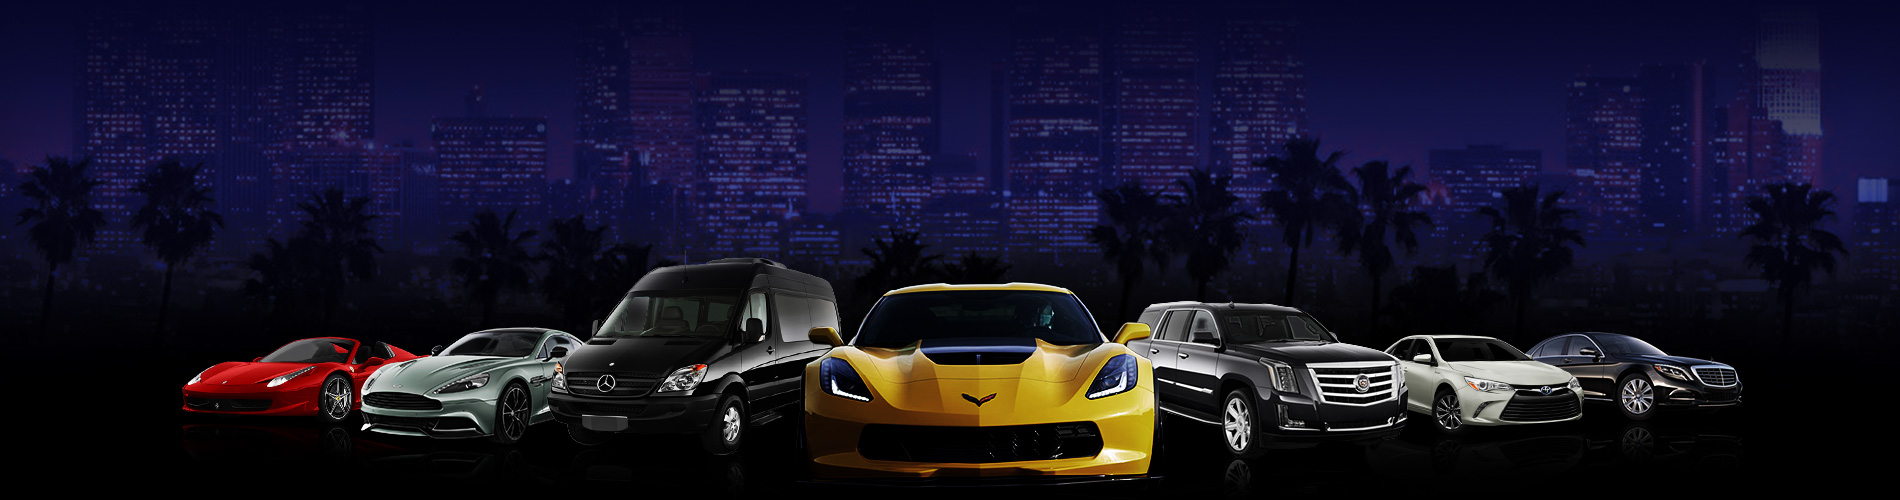 Luxury Car Lease >> Midway Fleet Leasing Car Lease Los Angeles Vehicle Leasing For